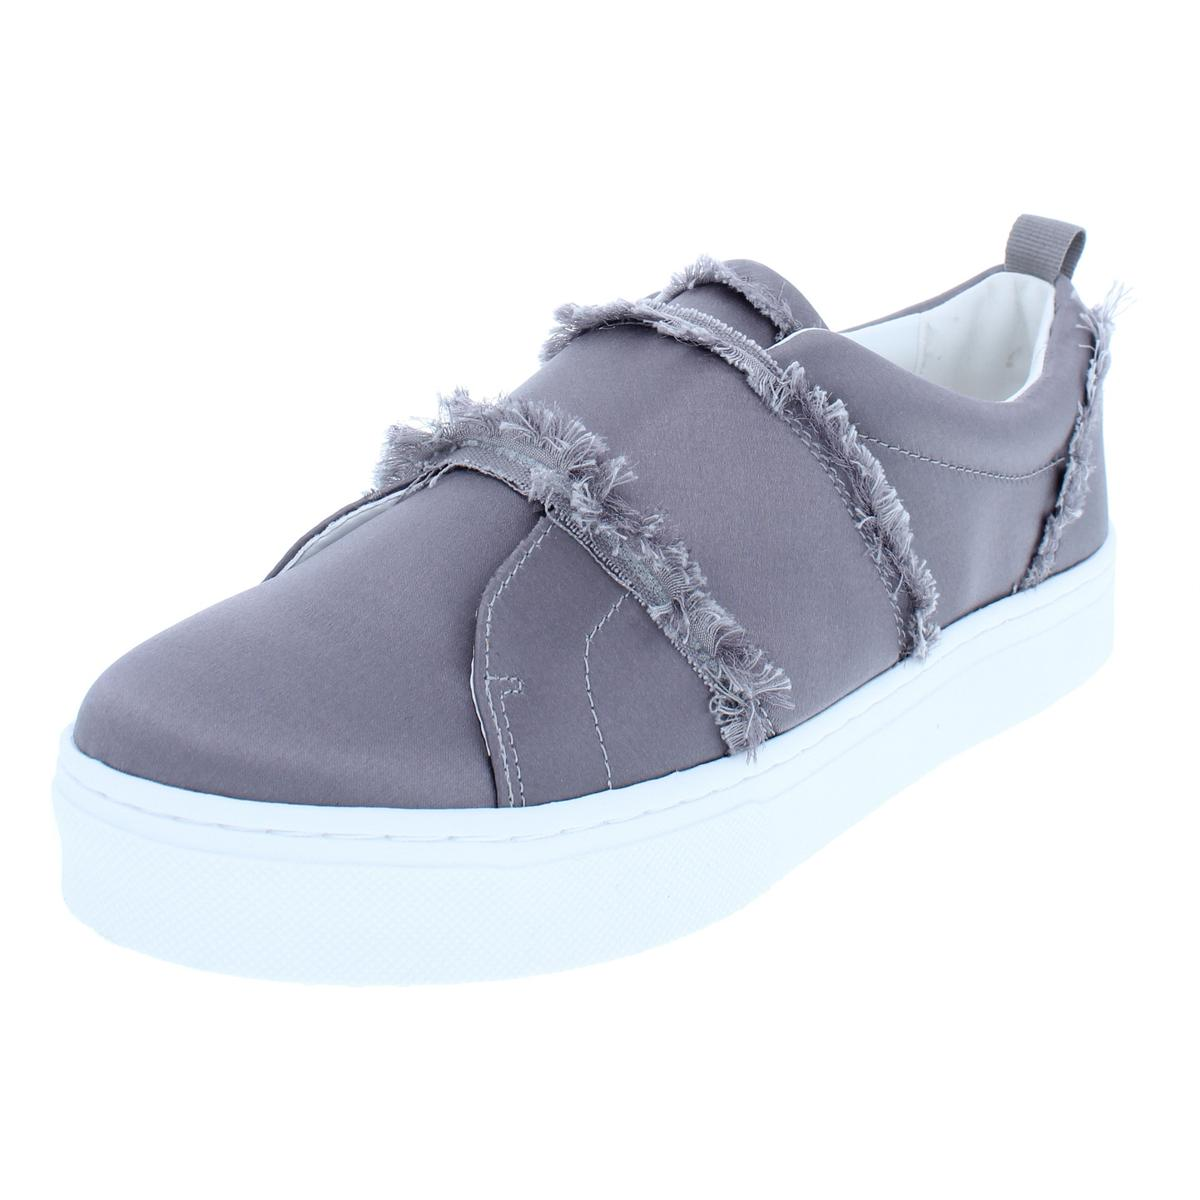 d95bbb8d7 Sam Edelman Womens Levine Gray Fashion Sneakers Shoes 9.5 Medium (B ...